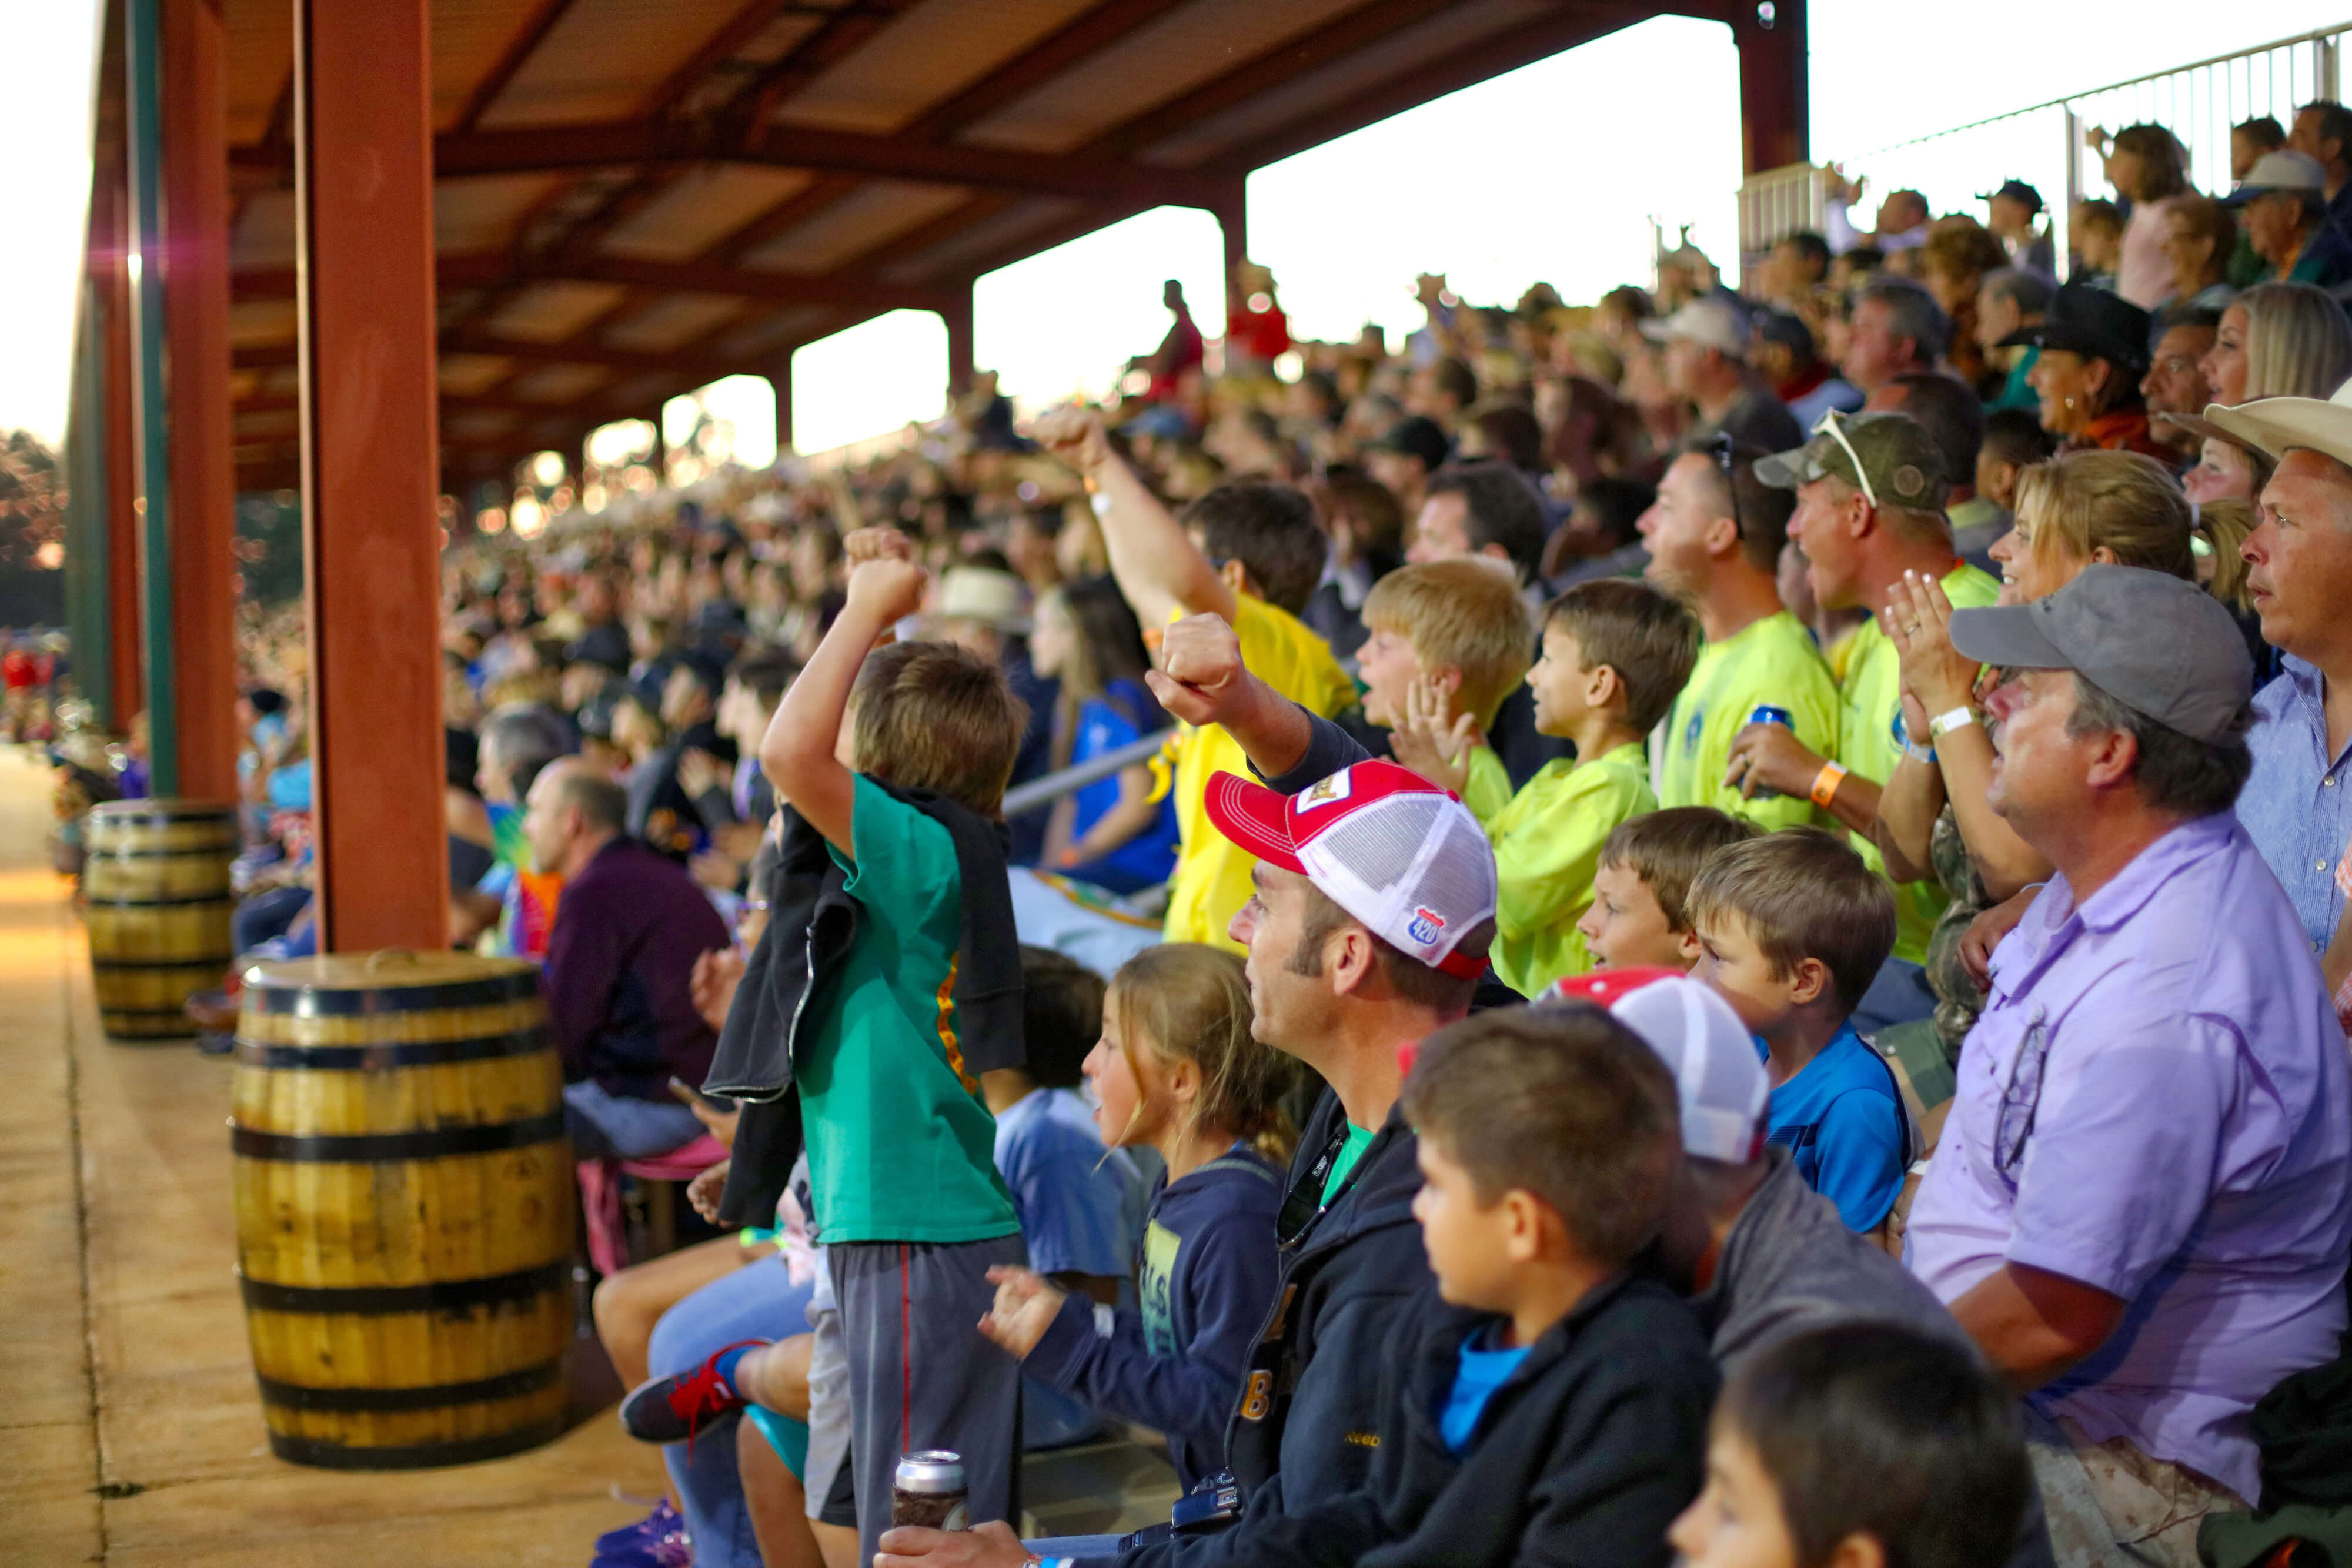 Families cheering at Championship Rodeo | Westgate River Ranch Resort & Rodeo | Westgate Resorts